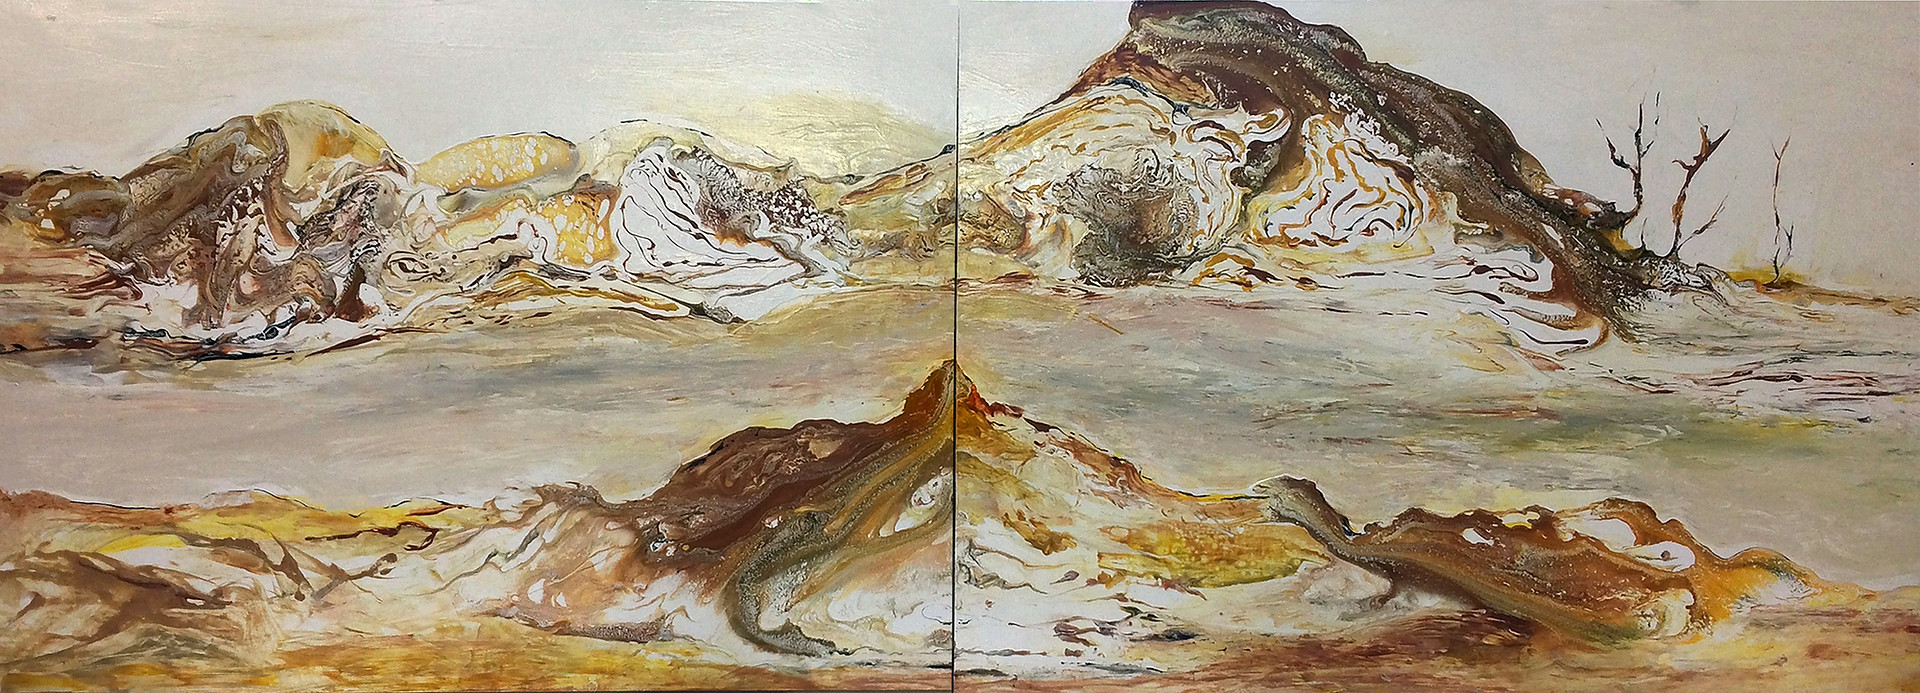 "Under the Sun, acrylic on wood diptych, 26""x72"", SOLD"